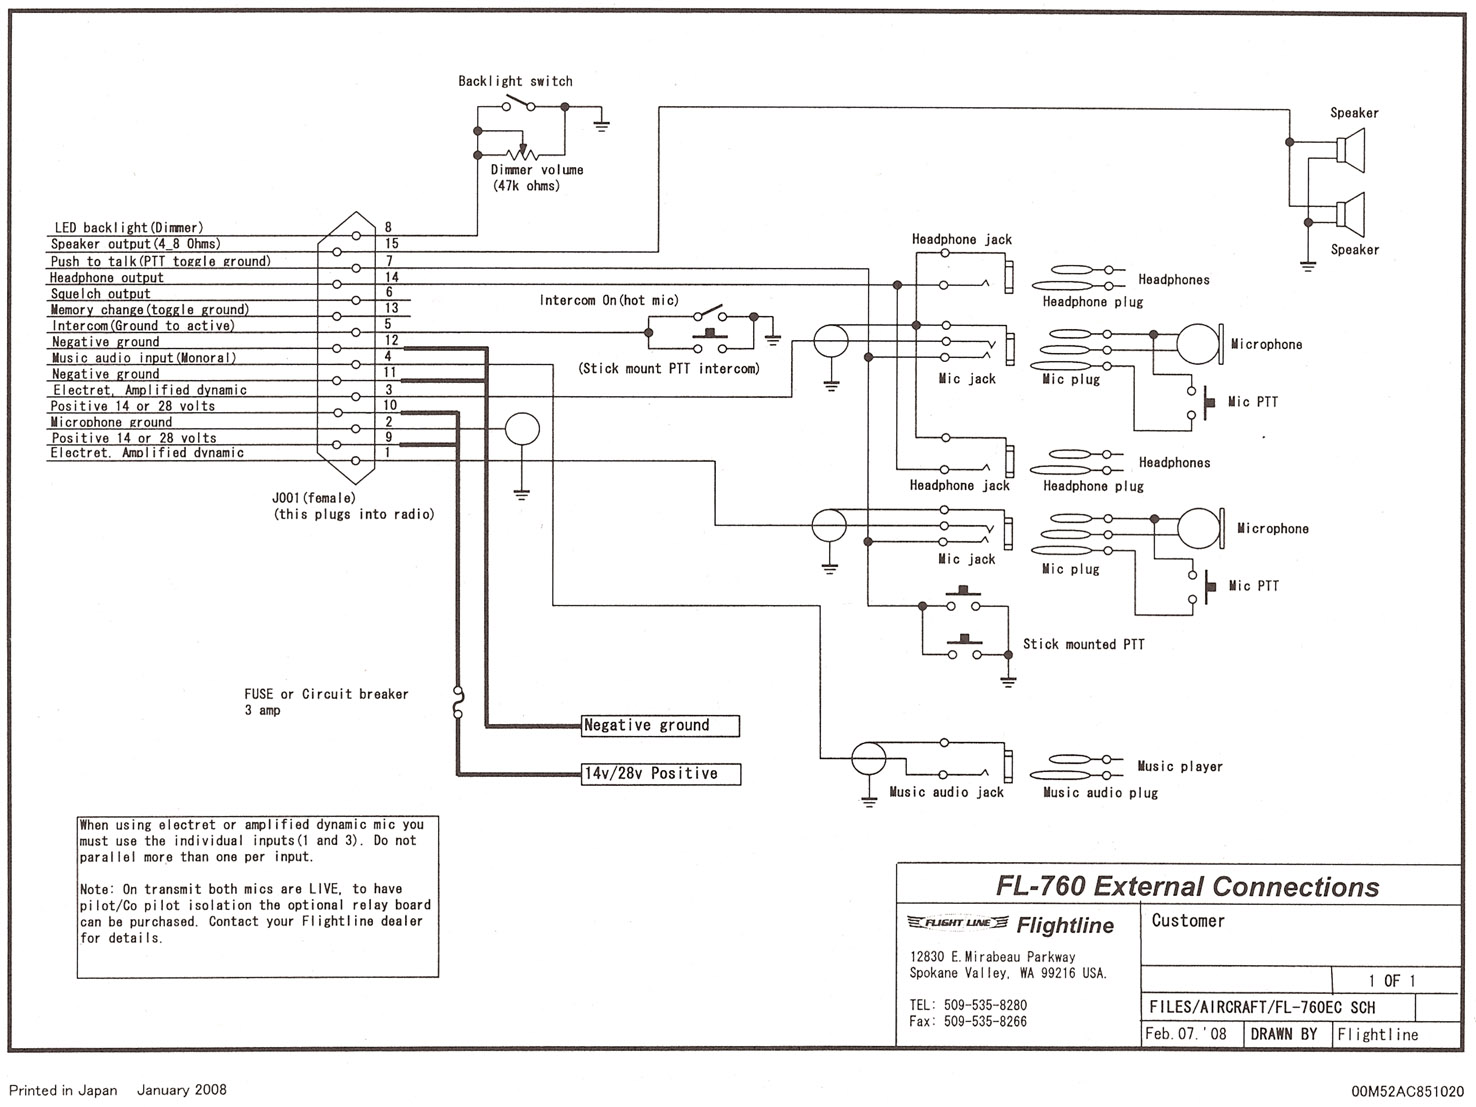 FL 760 Wiring Diagram cumulus soaring, inc flightline cessna 300 nav comm wiring diagram at reclaimingppi.co